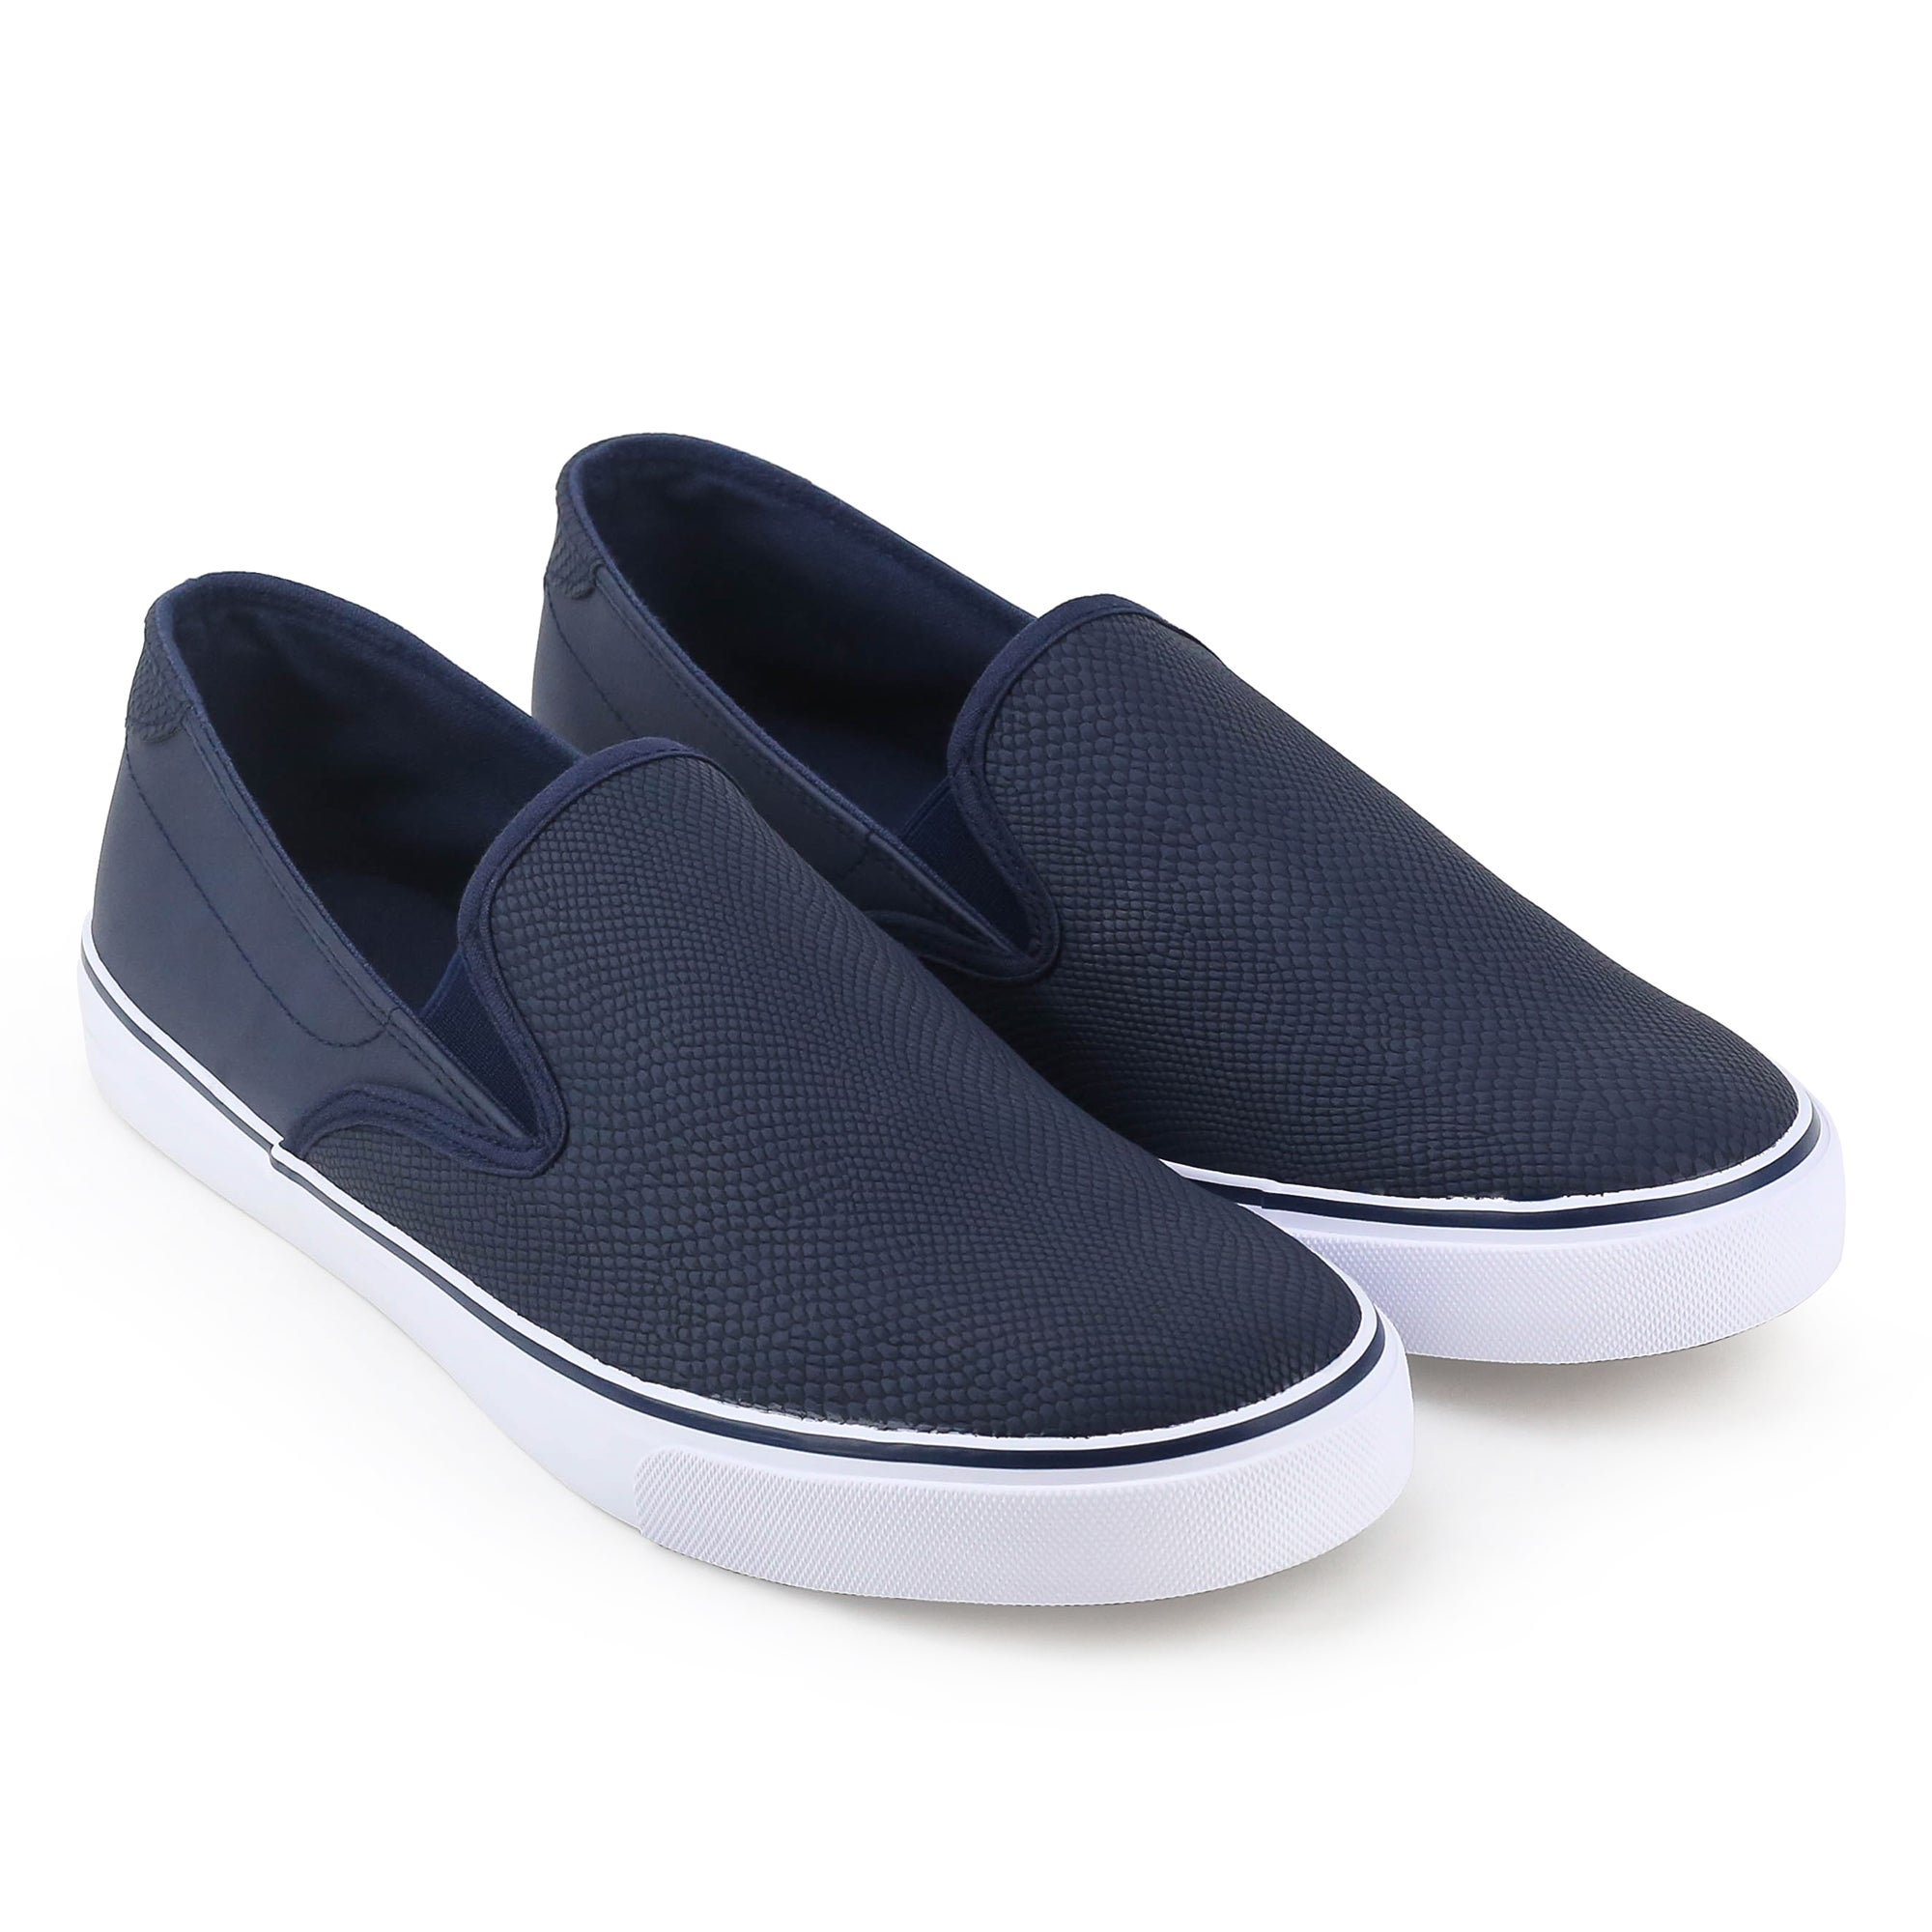 Unionbay Grayland Men's Black/White Slip On Sneaker - Free Shipping On  Orders Over $45 - Overstock.com - 20880942